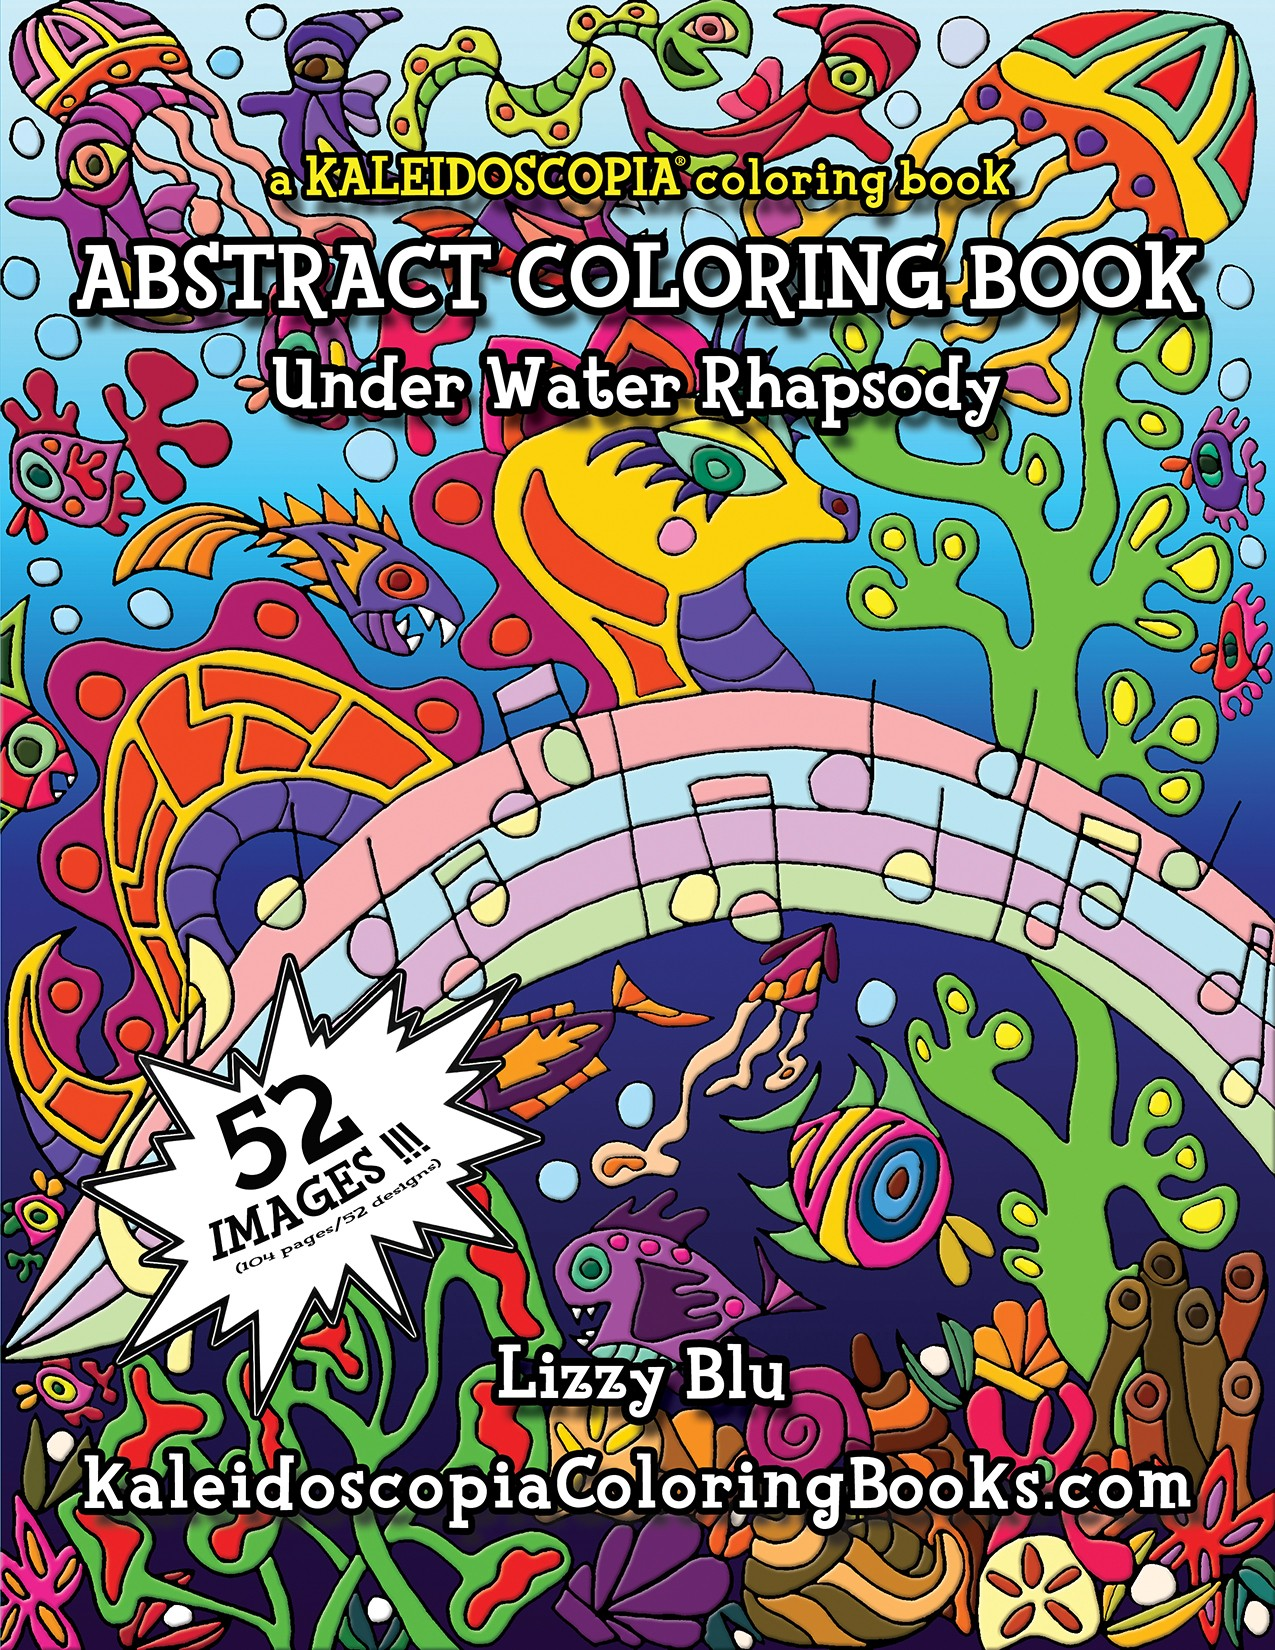 underwater rhapsody an abstract coloring book - Abstract Coloring Books